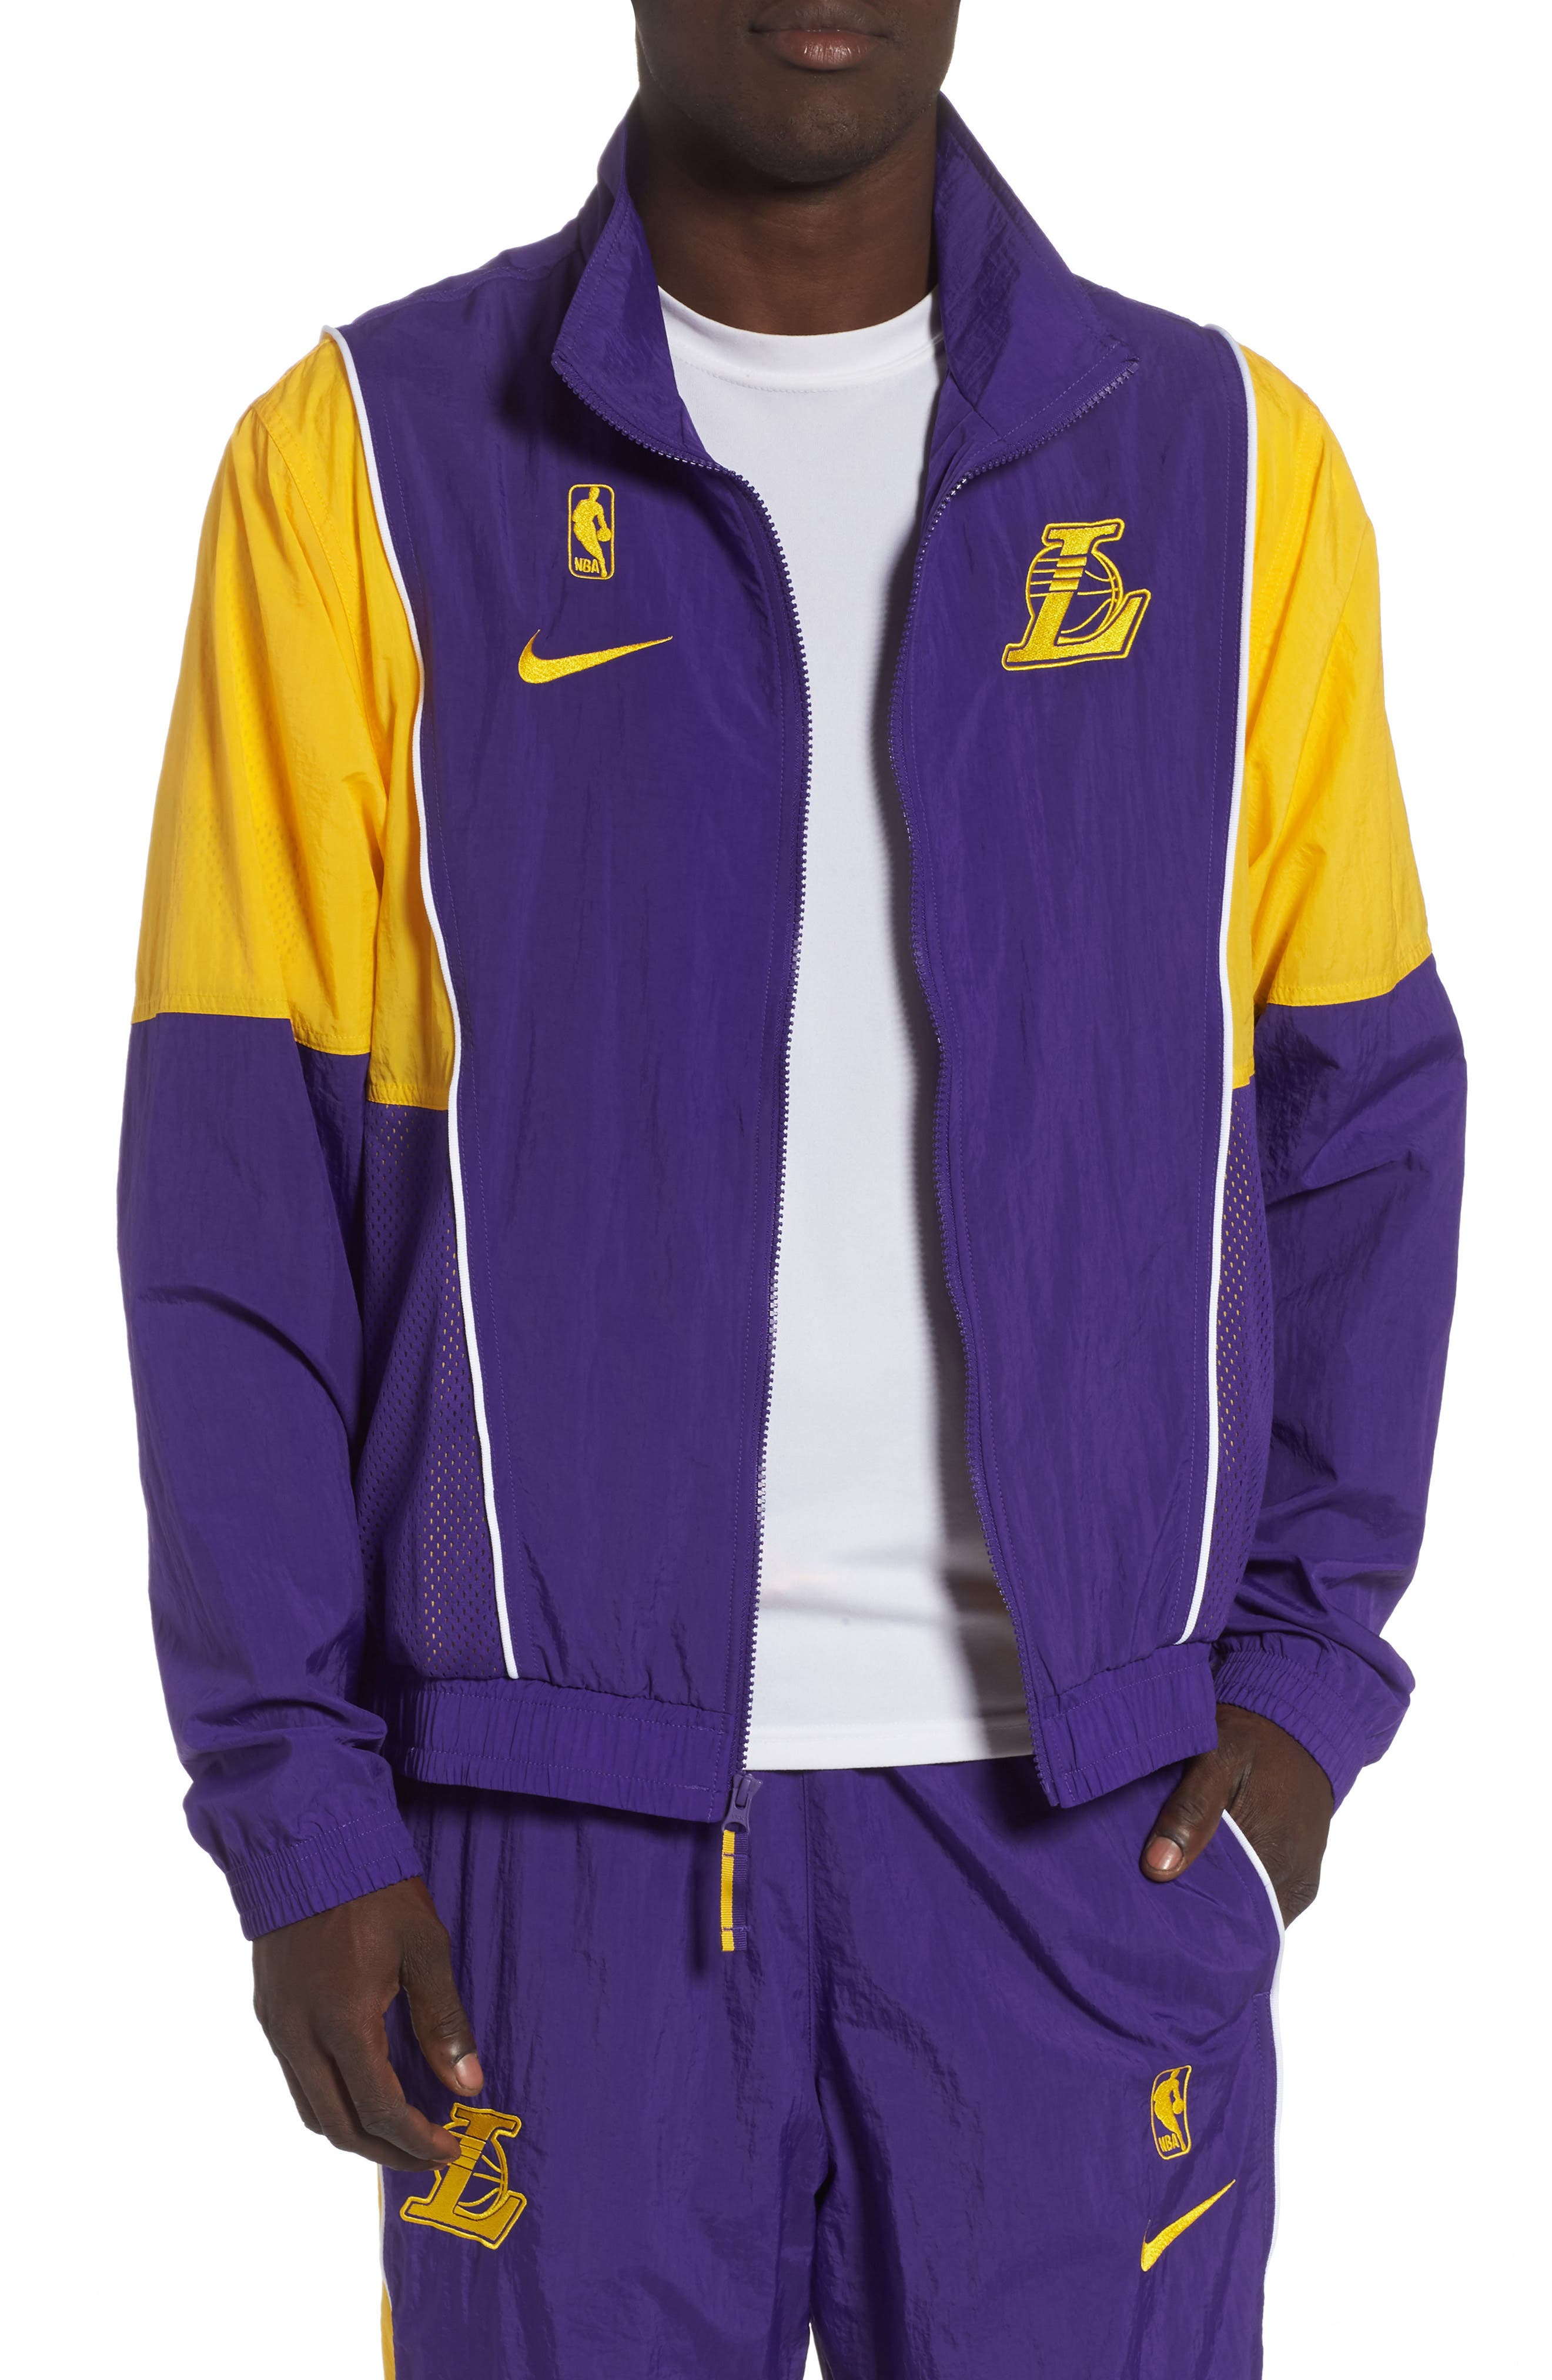 L.A. Lakers Track Jacket,                         Main,                         color, 504